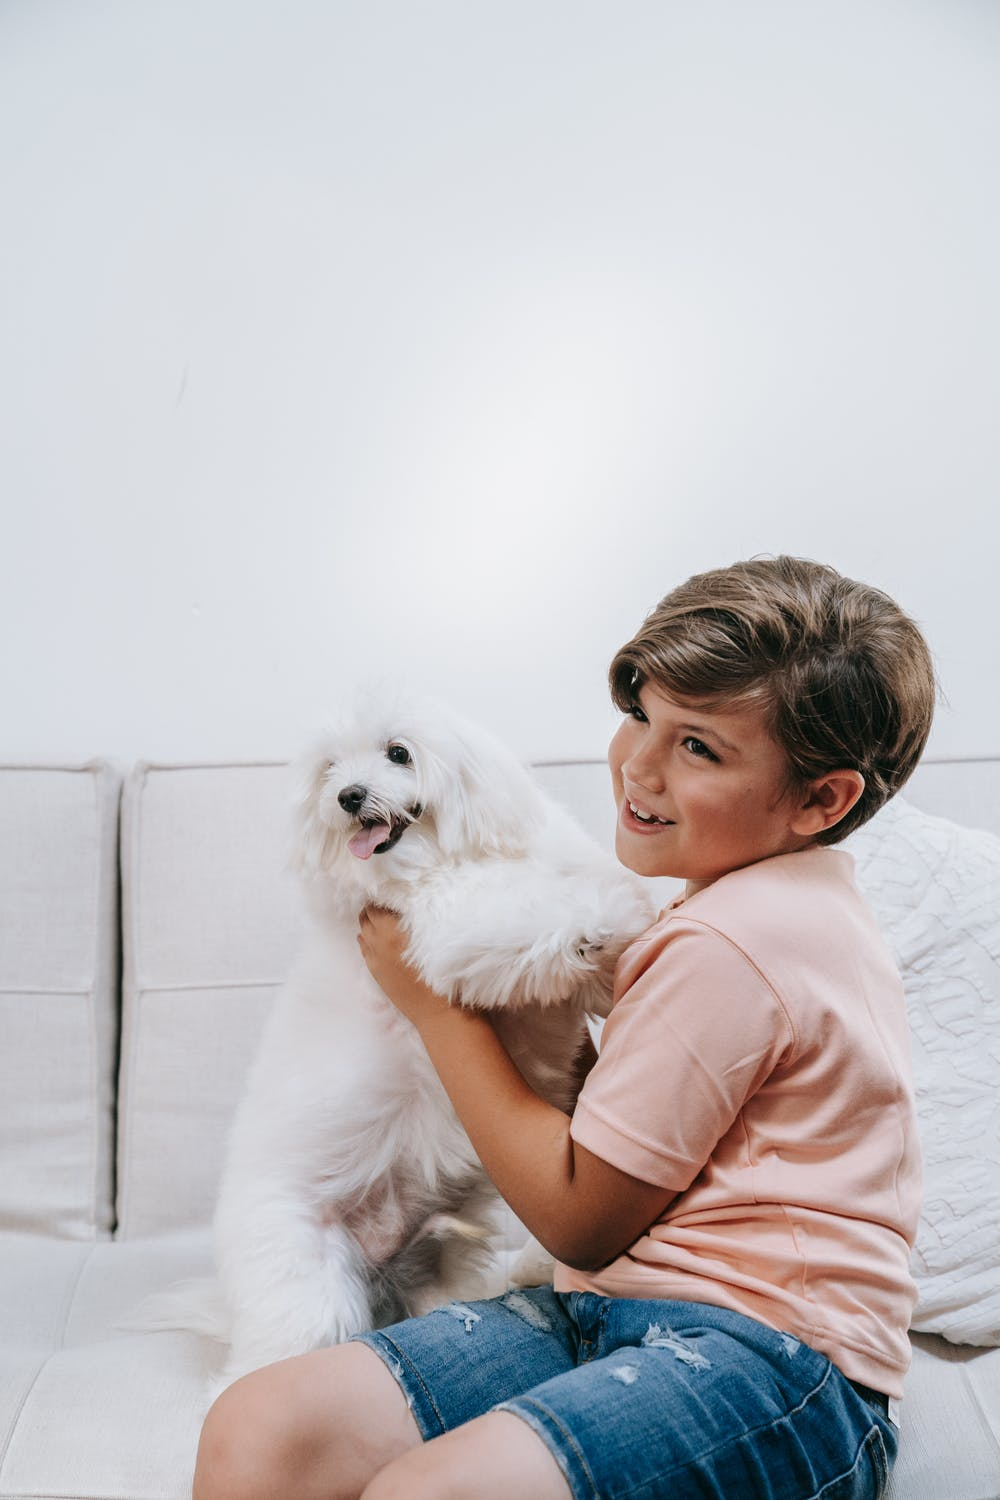 Pear and I are best friends | Source: Pexels